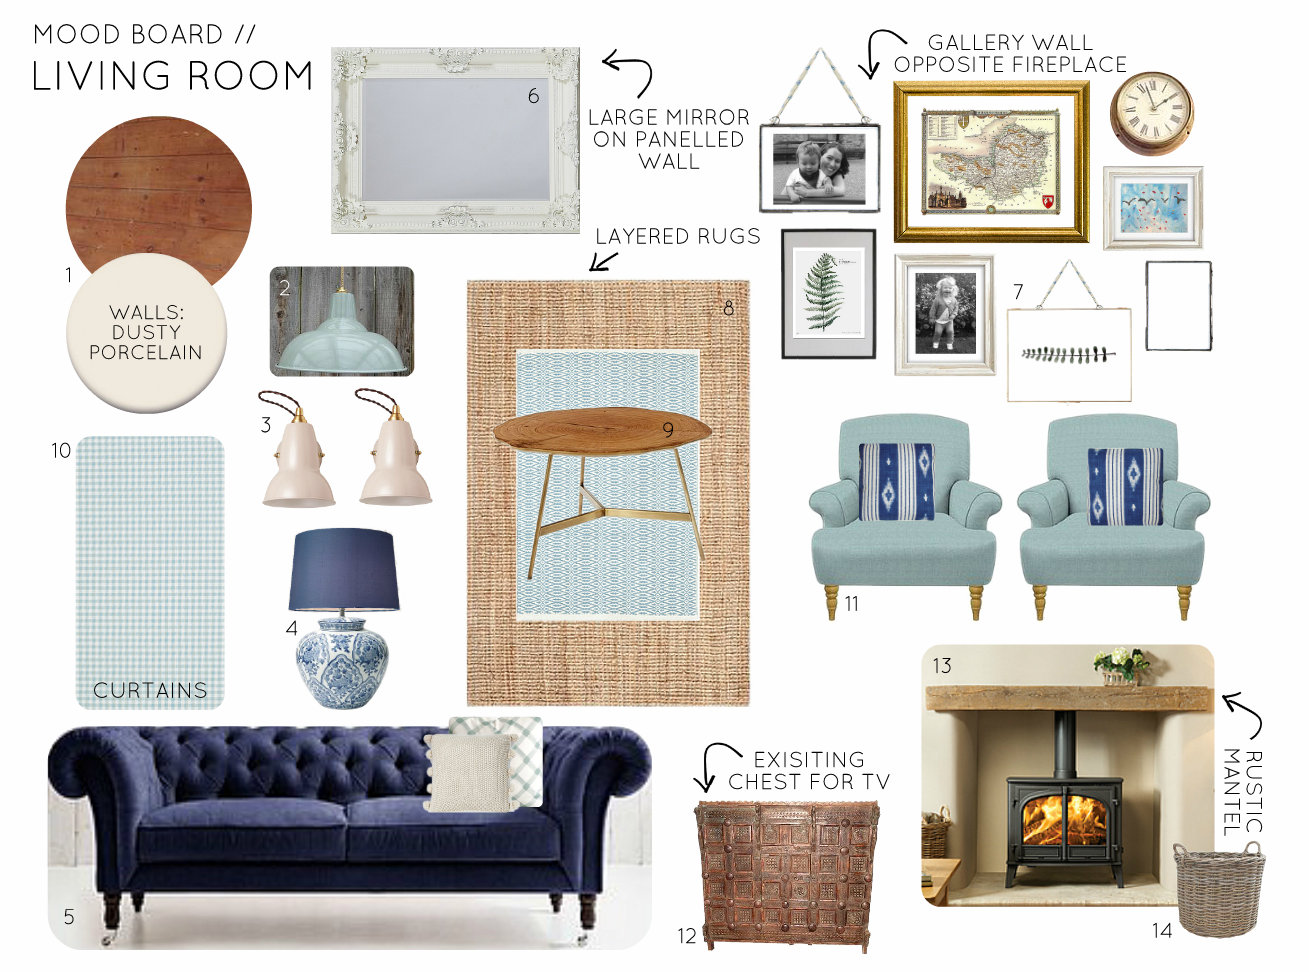 living room mood board mood board archives emmerson and fifteenth 16730